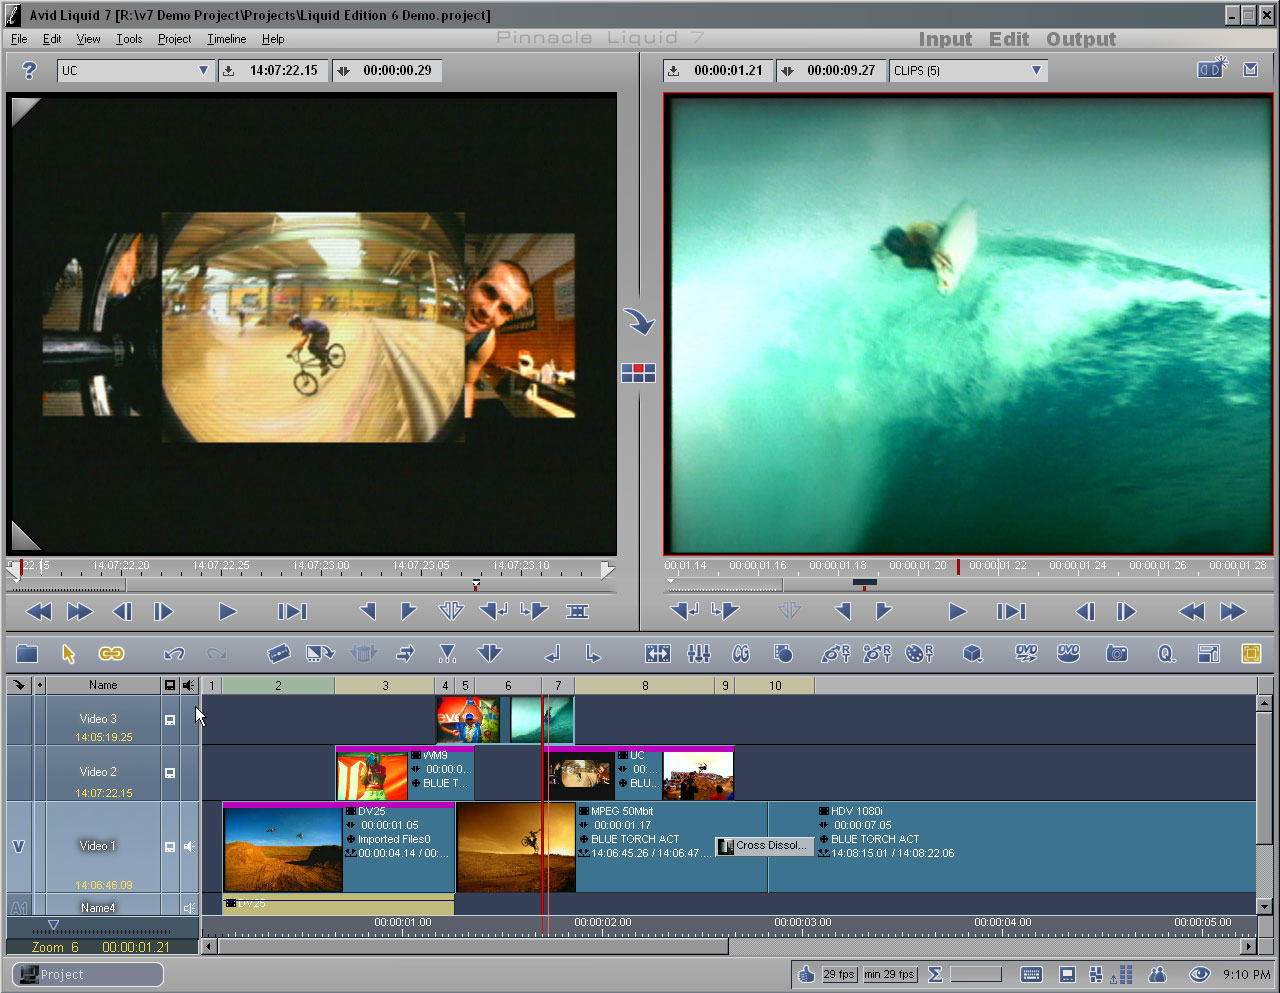 GFXPerfect - Free Download !: Adobe Premiere -Edius - Avid ...